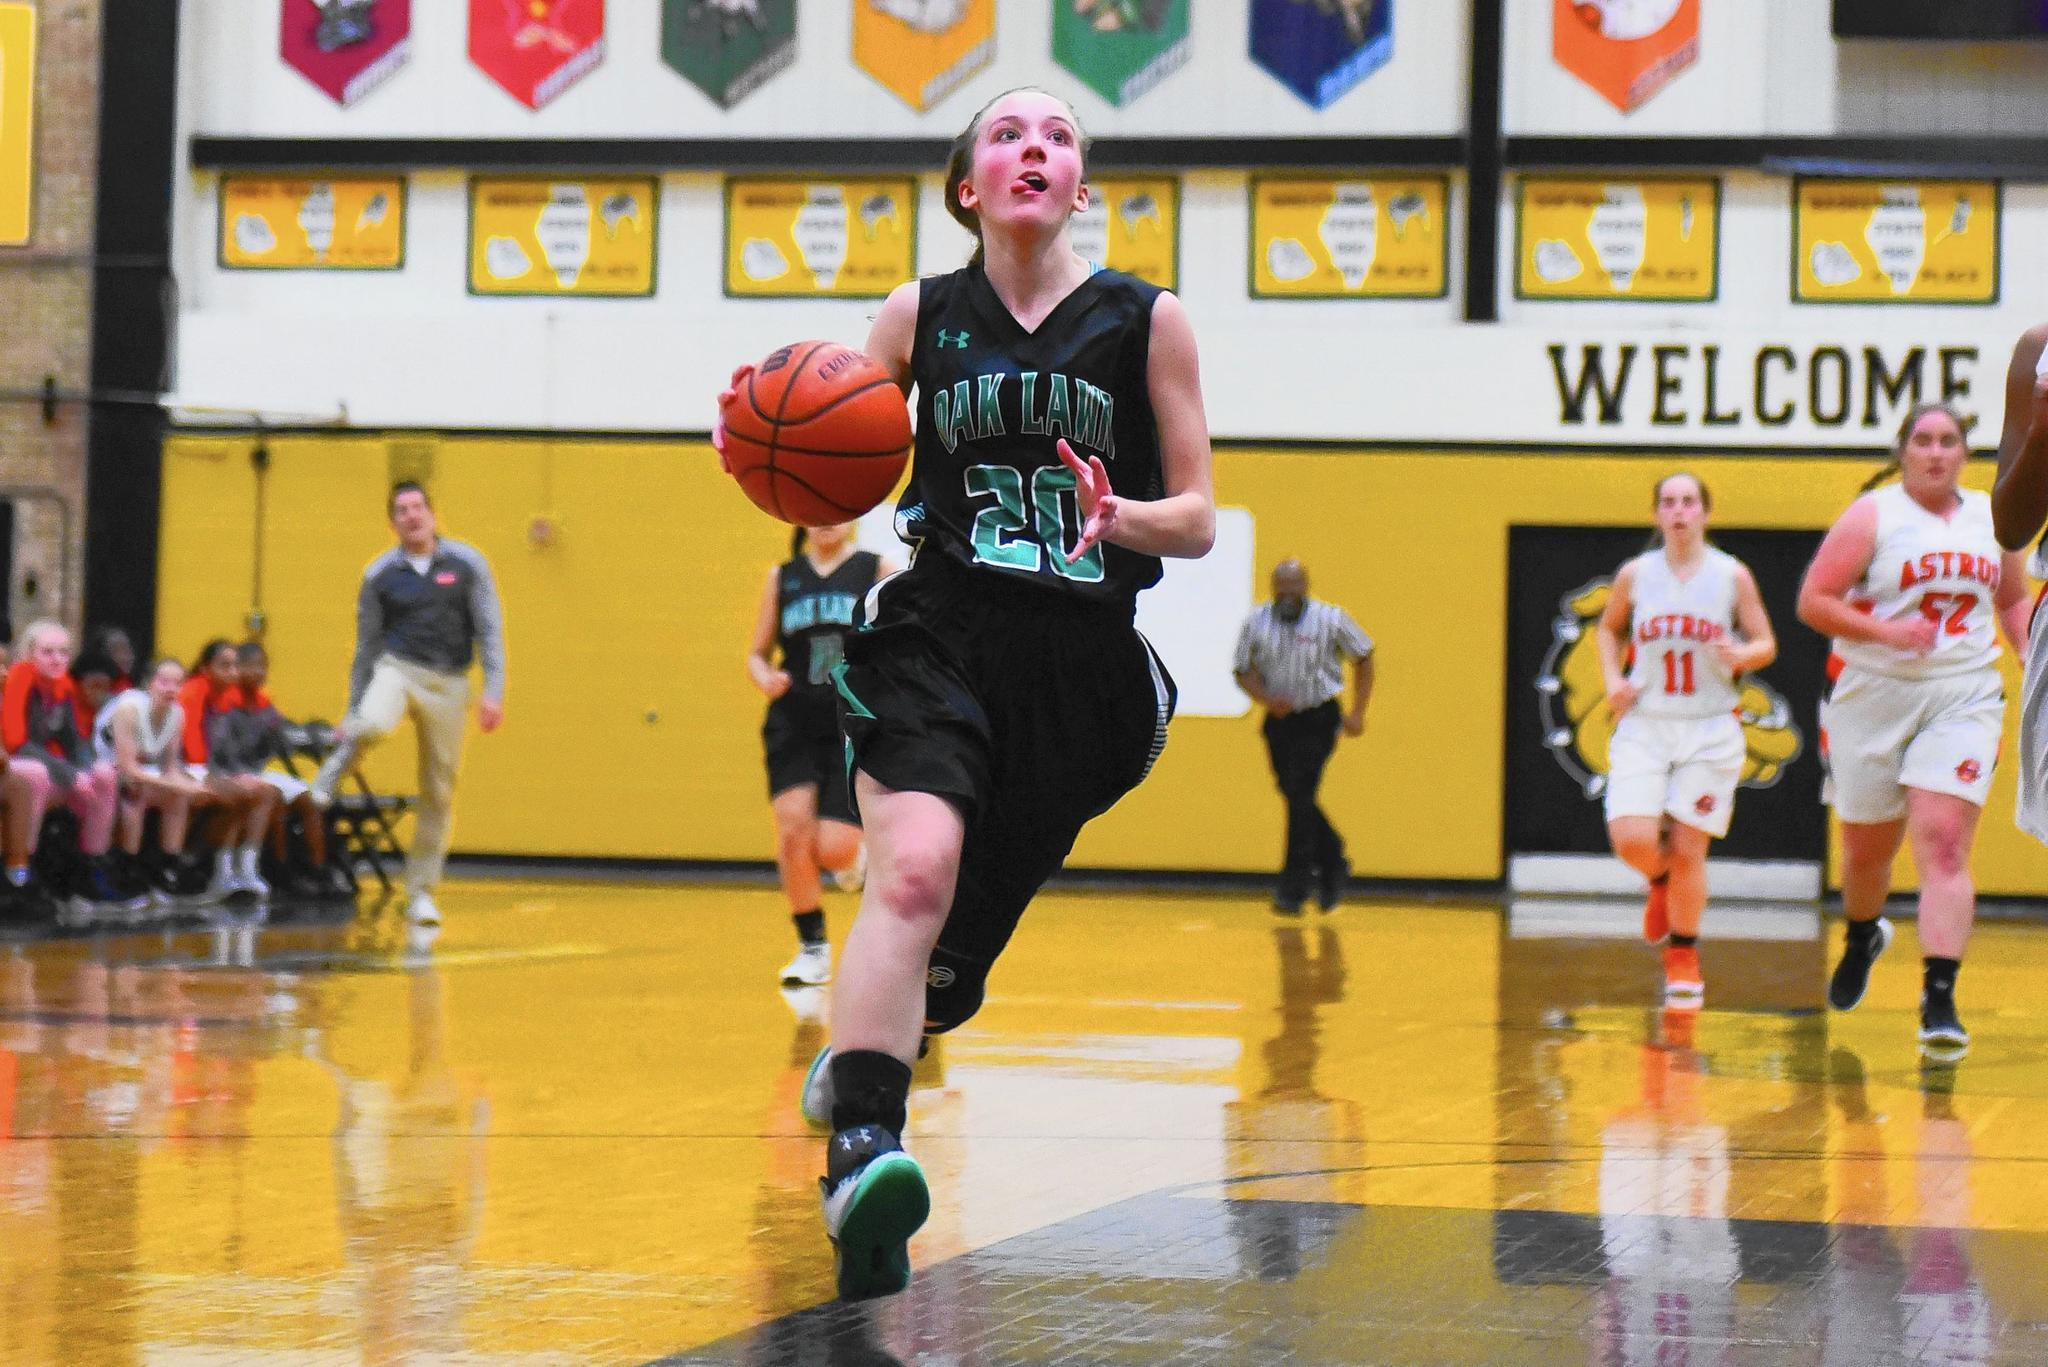 Ct-sta-girls-basketball-notes-st-1212-20171211